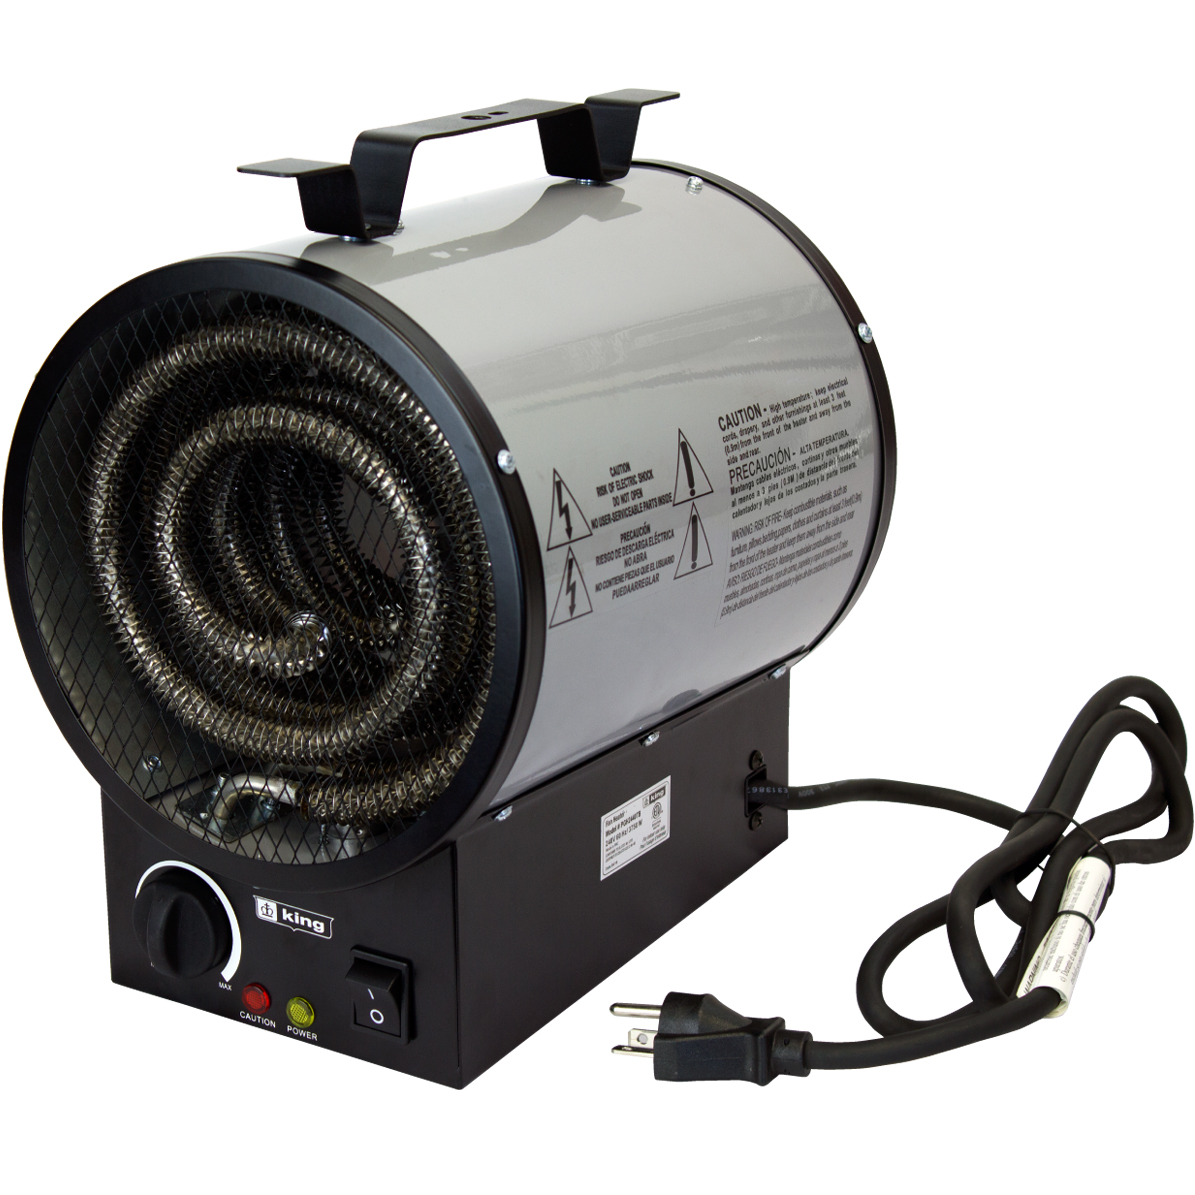 King Electric Garage Heater King Electric Model Pgh2448tb